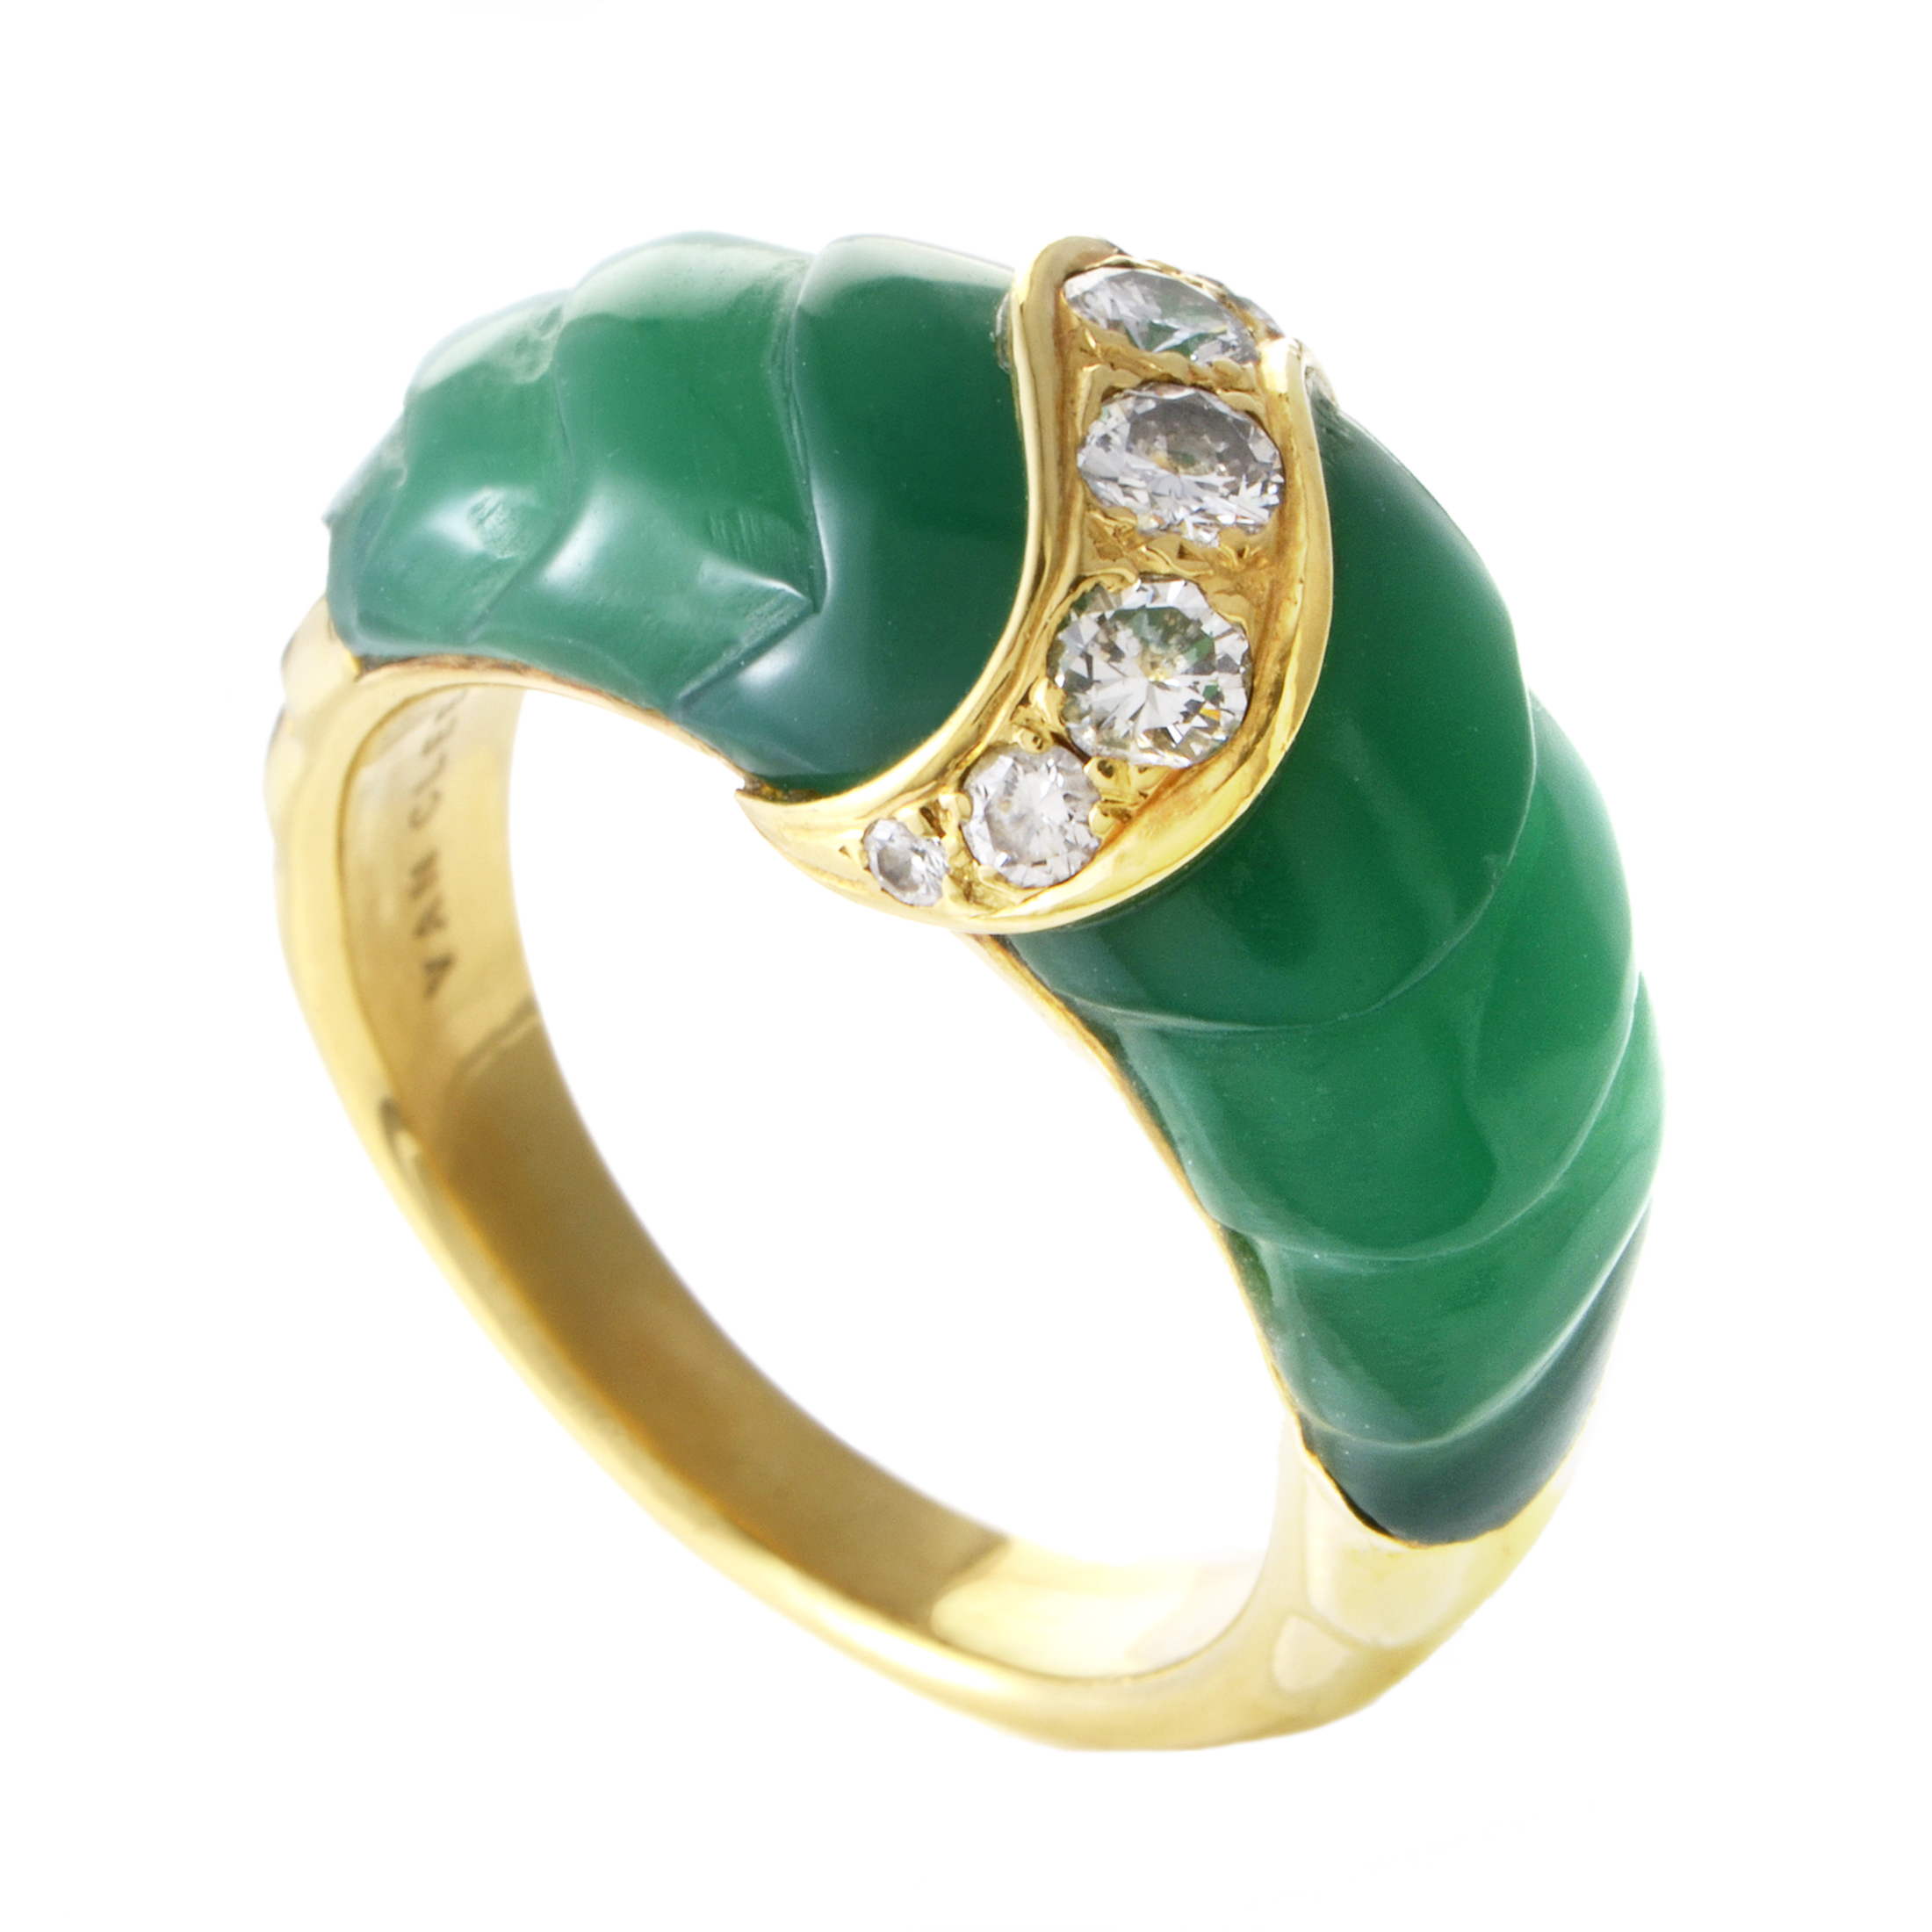 Van Cleef & Arpels Women's 18K Yellow Gold Diamond & Chrysoprase Band Ring